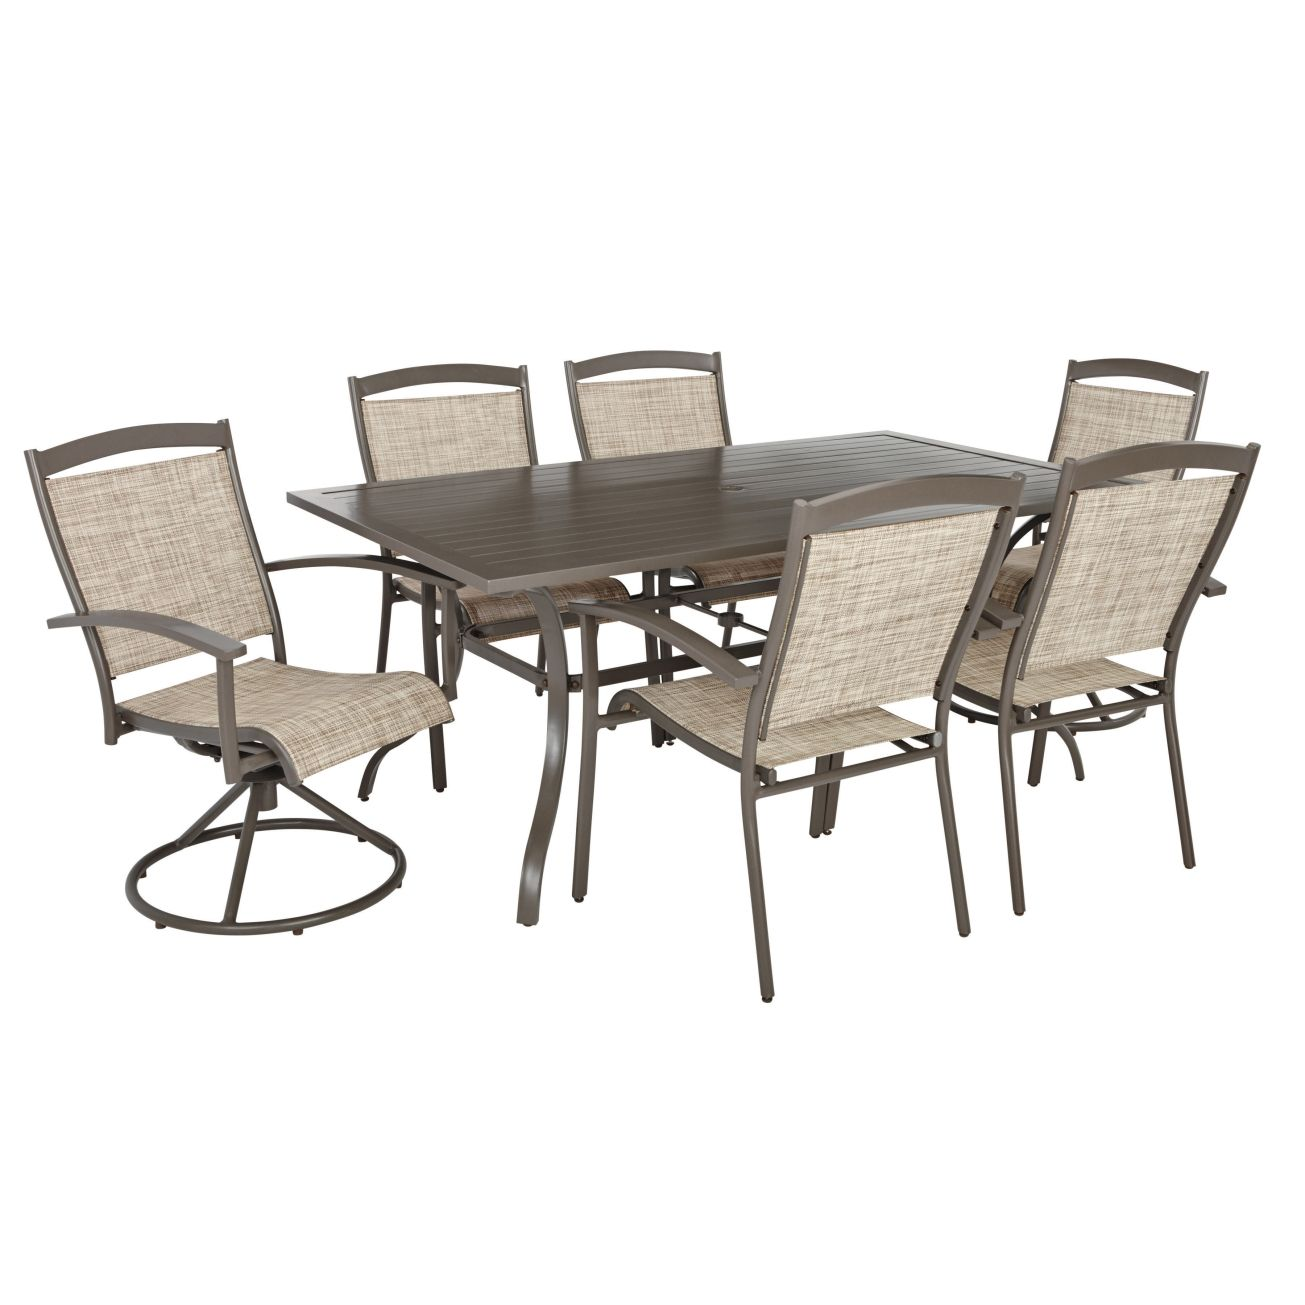 Living Accents Colma Dining Set 7 pc. - All Patio ... on Living Accents Patio id=14022